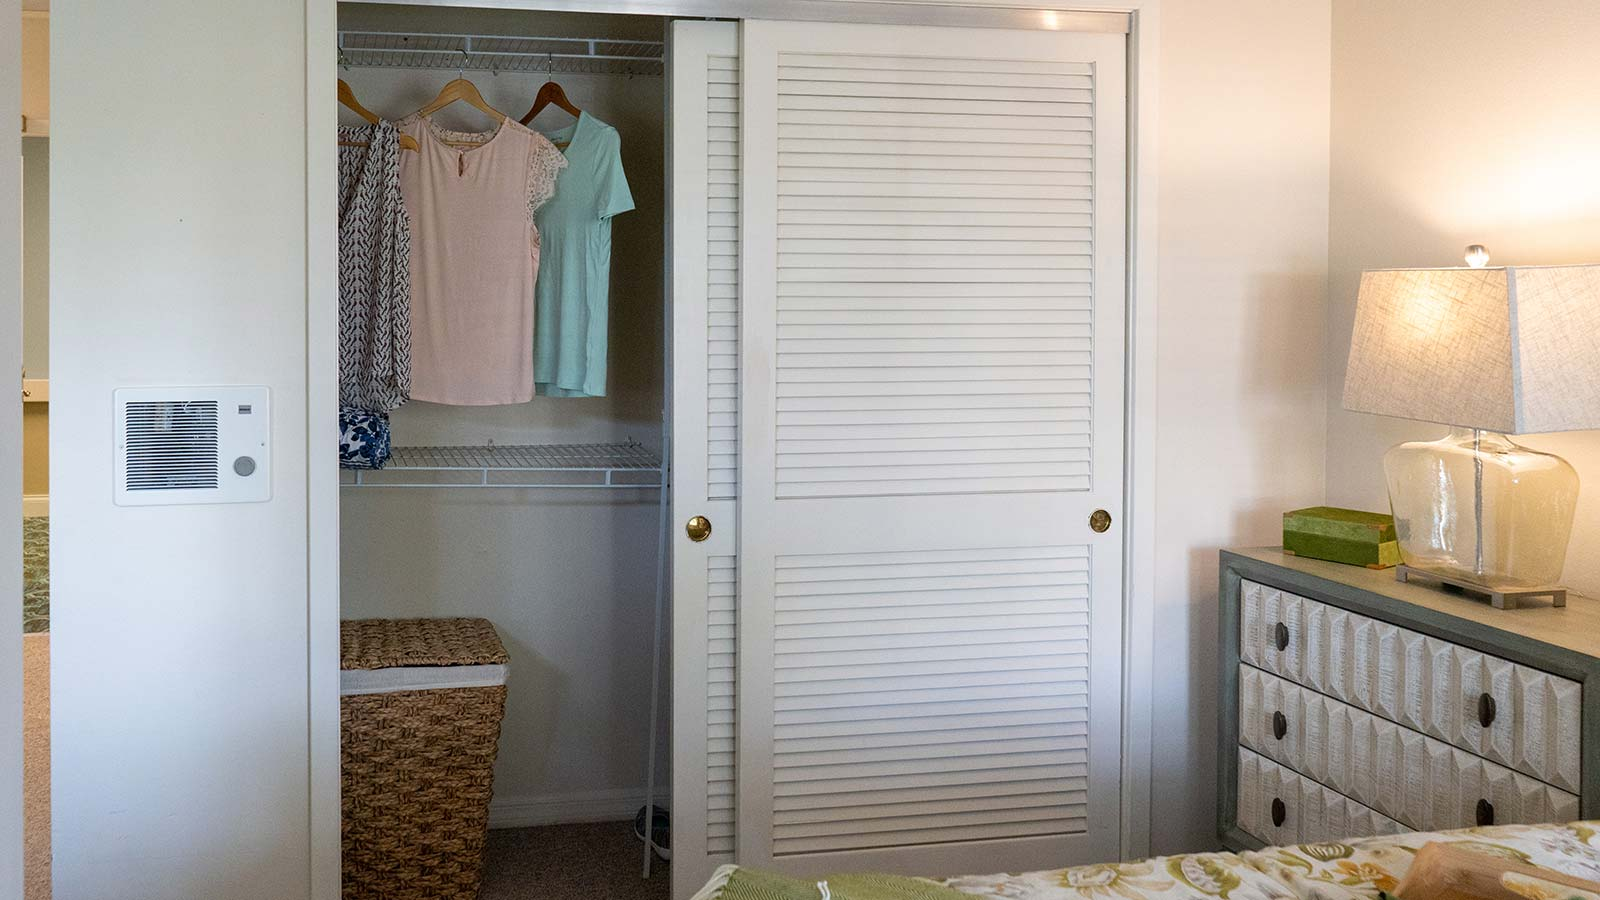 Model apartment bedroom closet at Heron Club assisted living and memory care in Sarasota Florida